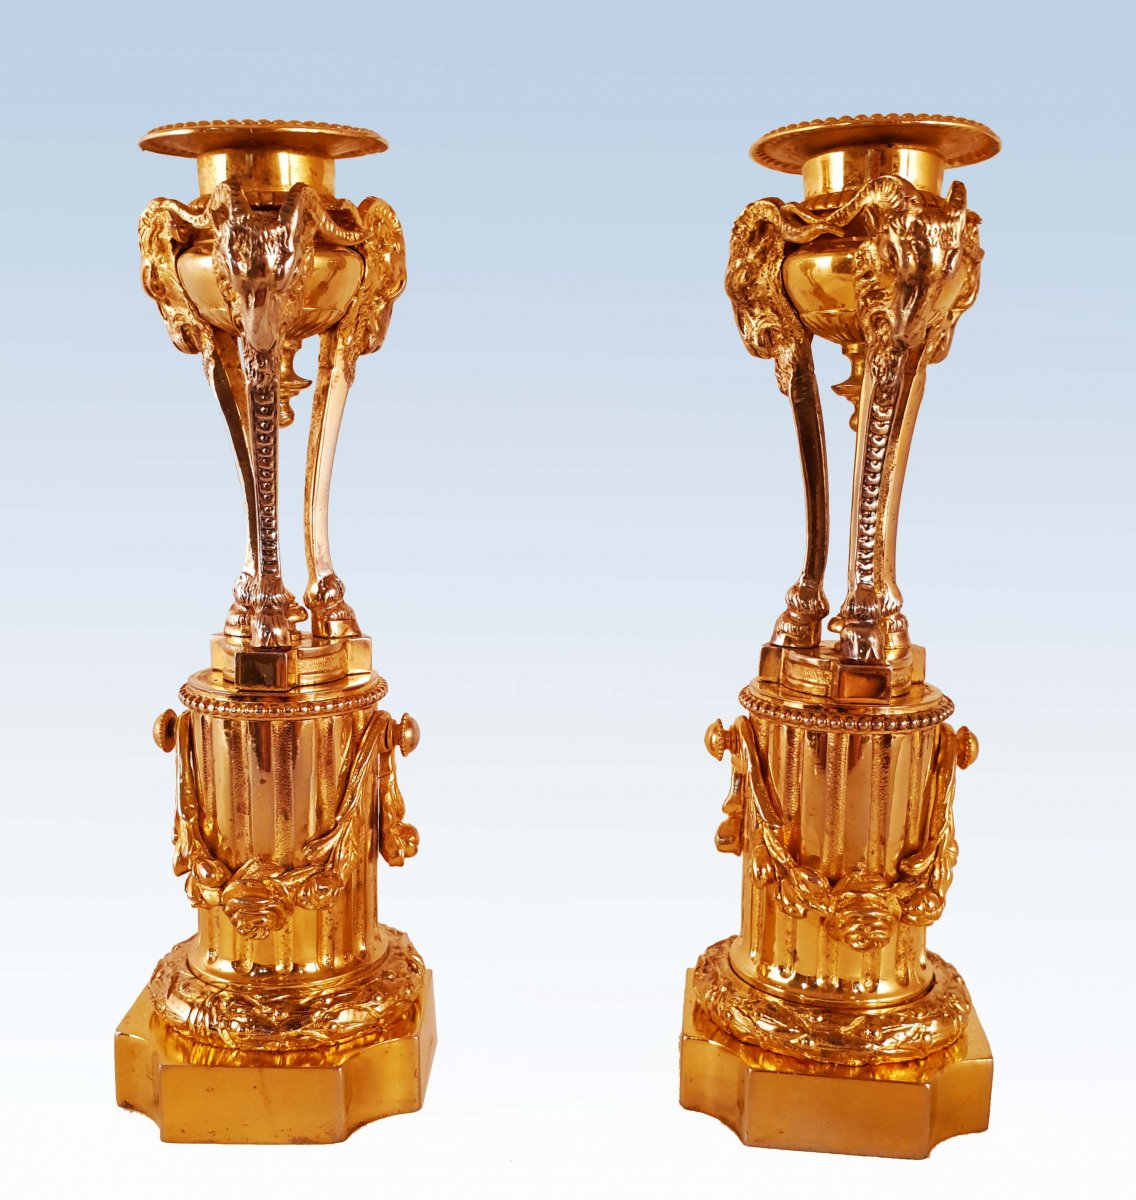 Pair Of Candlesticks In Athenian Gilt Bronze Nineteenth